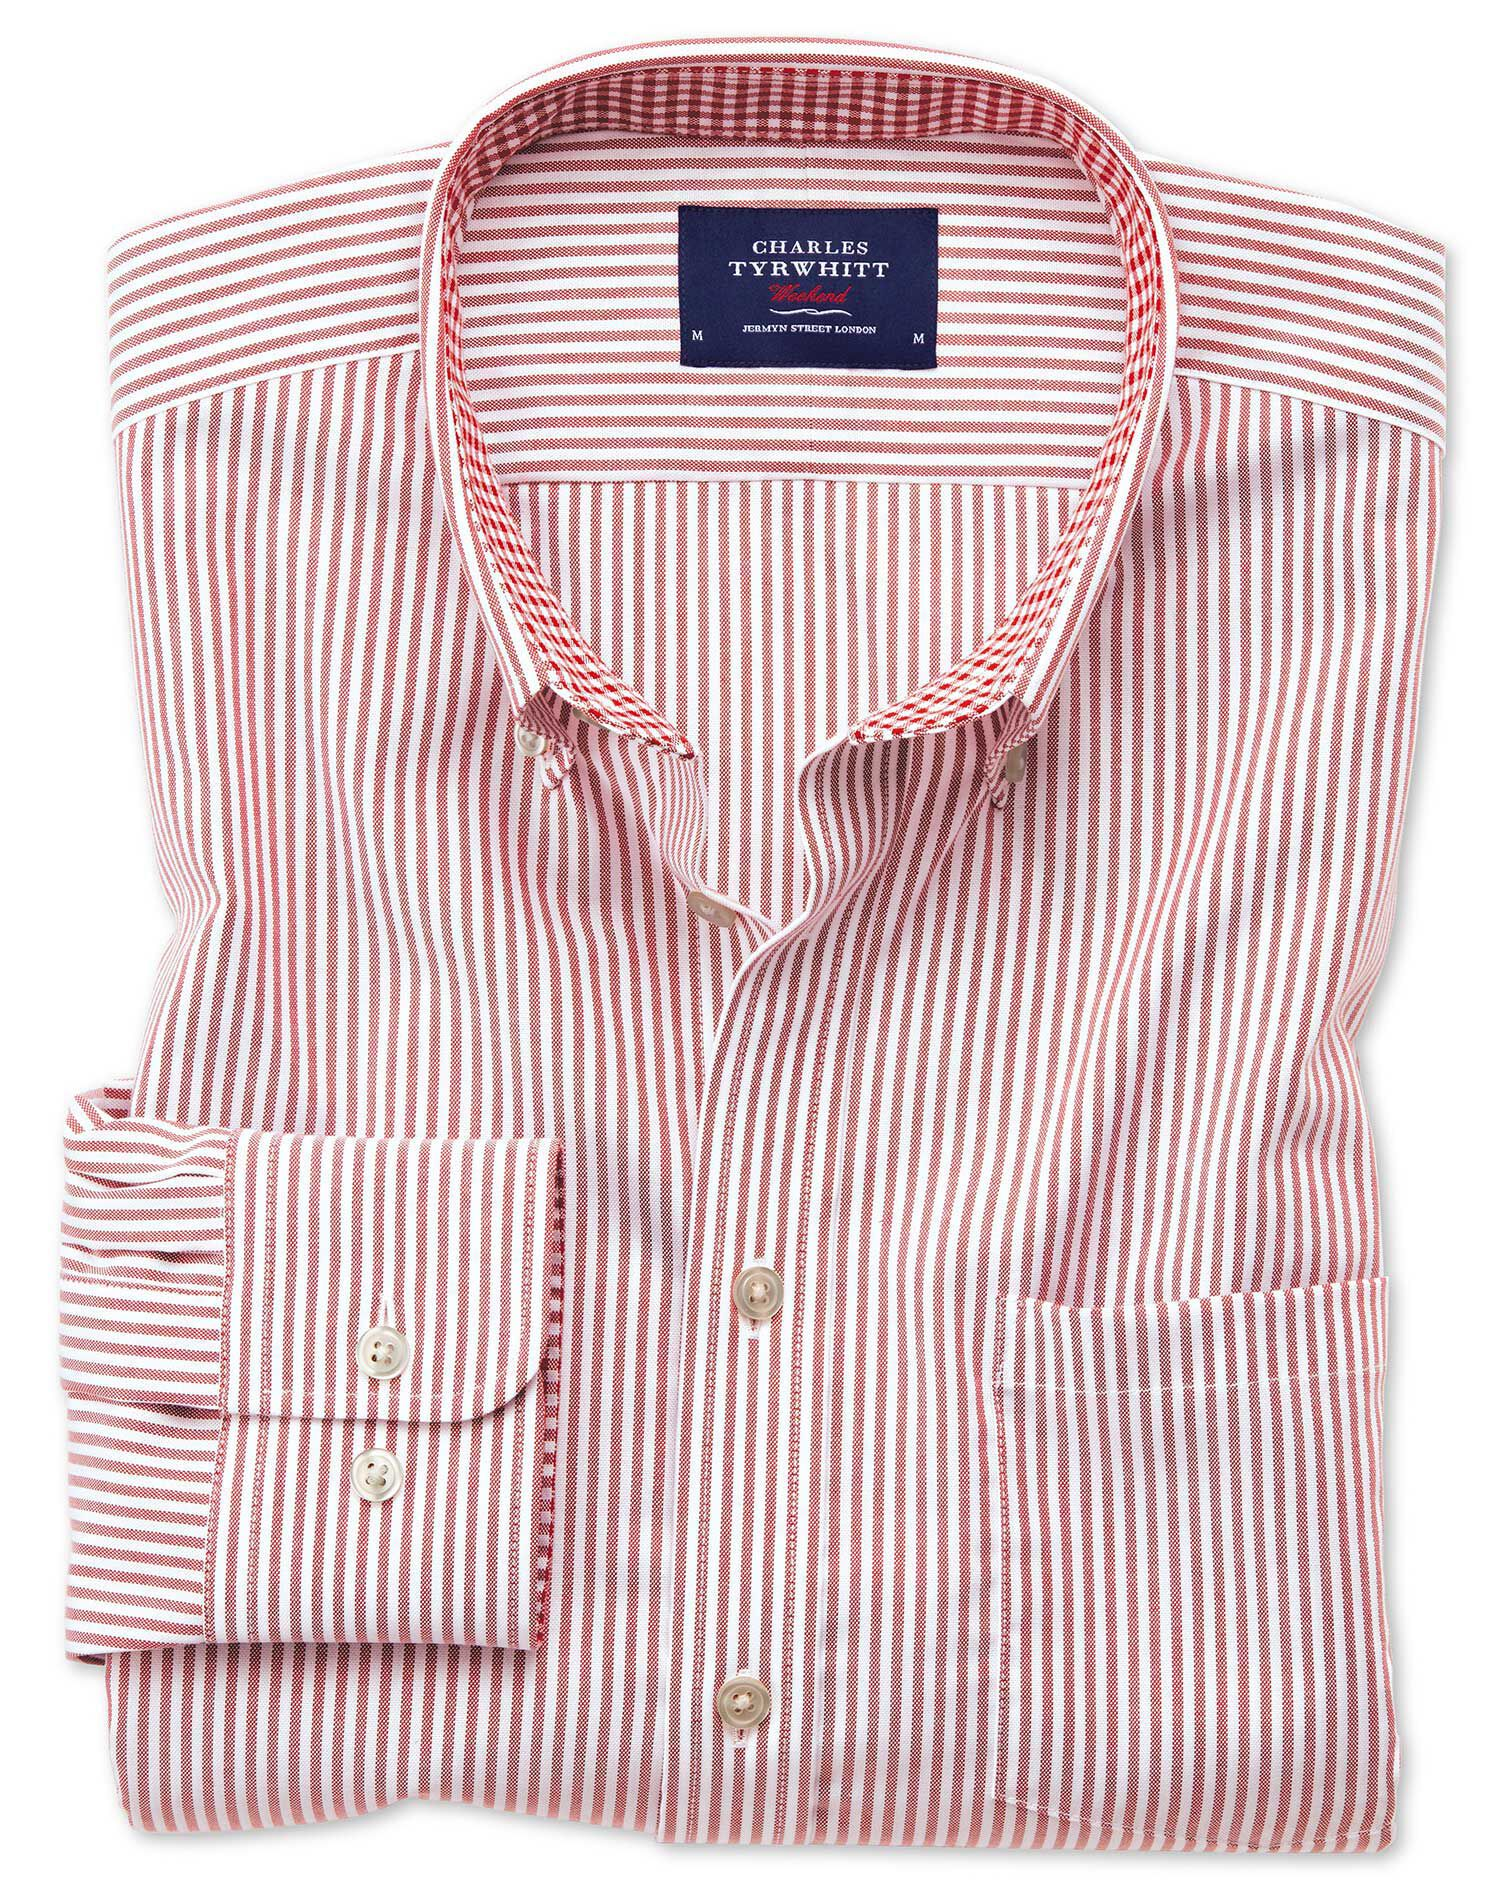 Classic Fit Button-Down Non-Iron Oxford Bengal Stripe Rust Cotton Shirt Single Cuff Size Medium by C